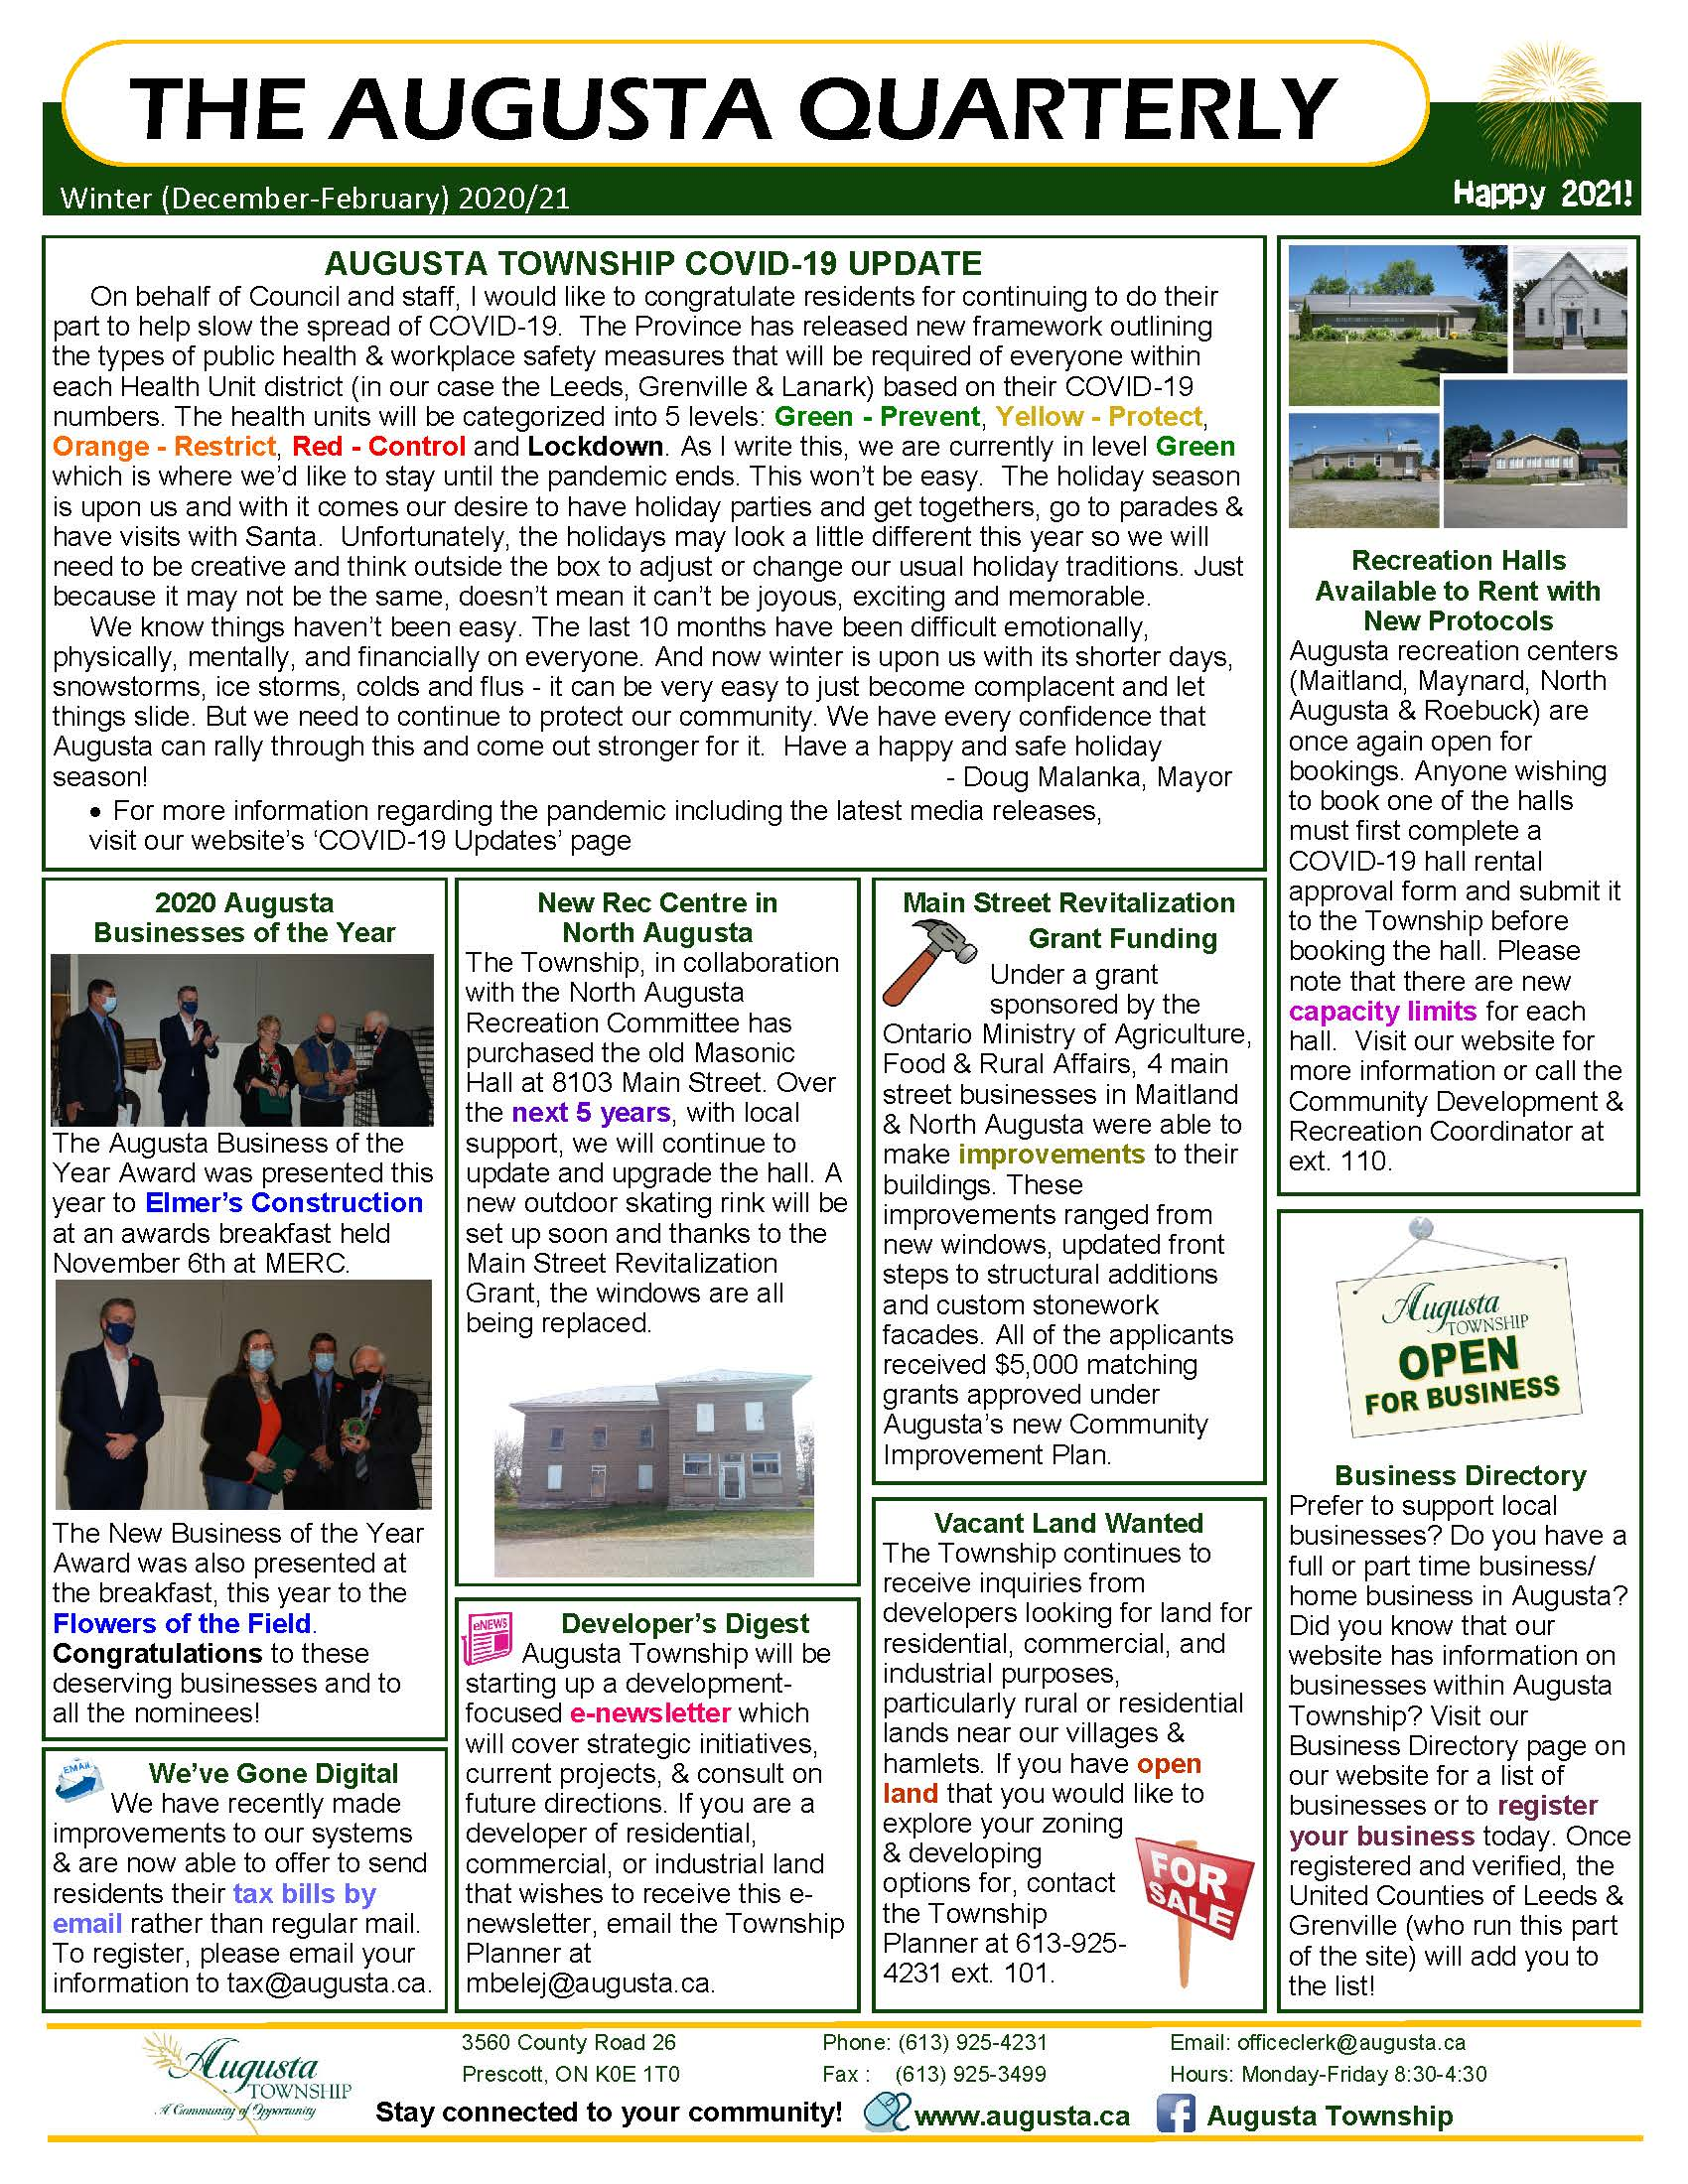 photo of the winter 2020 quarterly newsletter